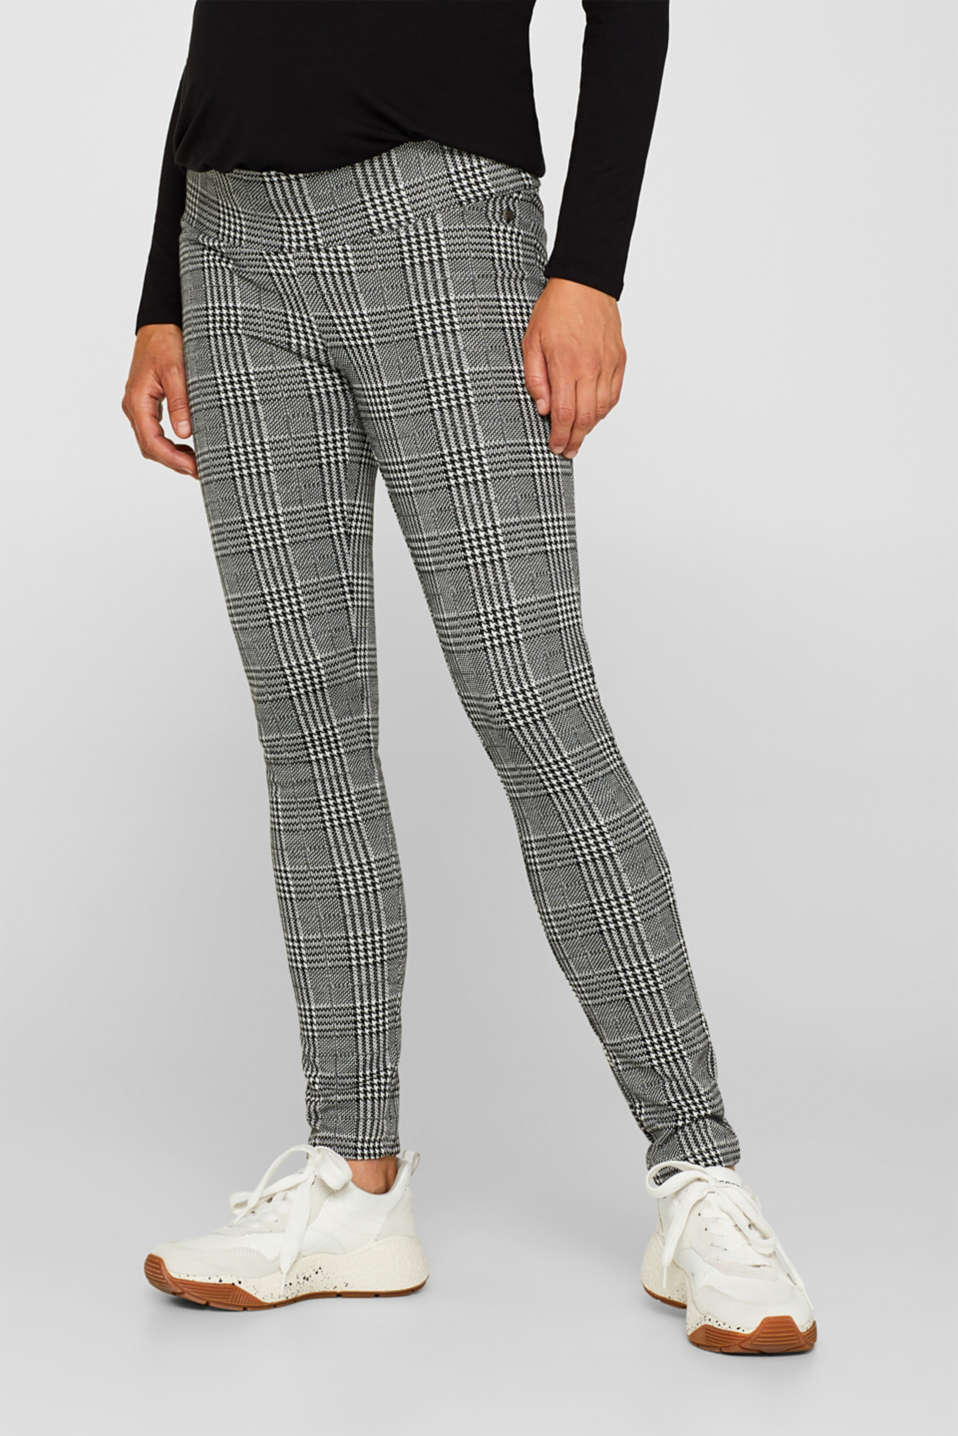 Esprit - Check leggings with an under-bump waistband